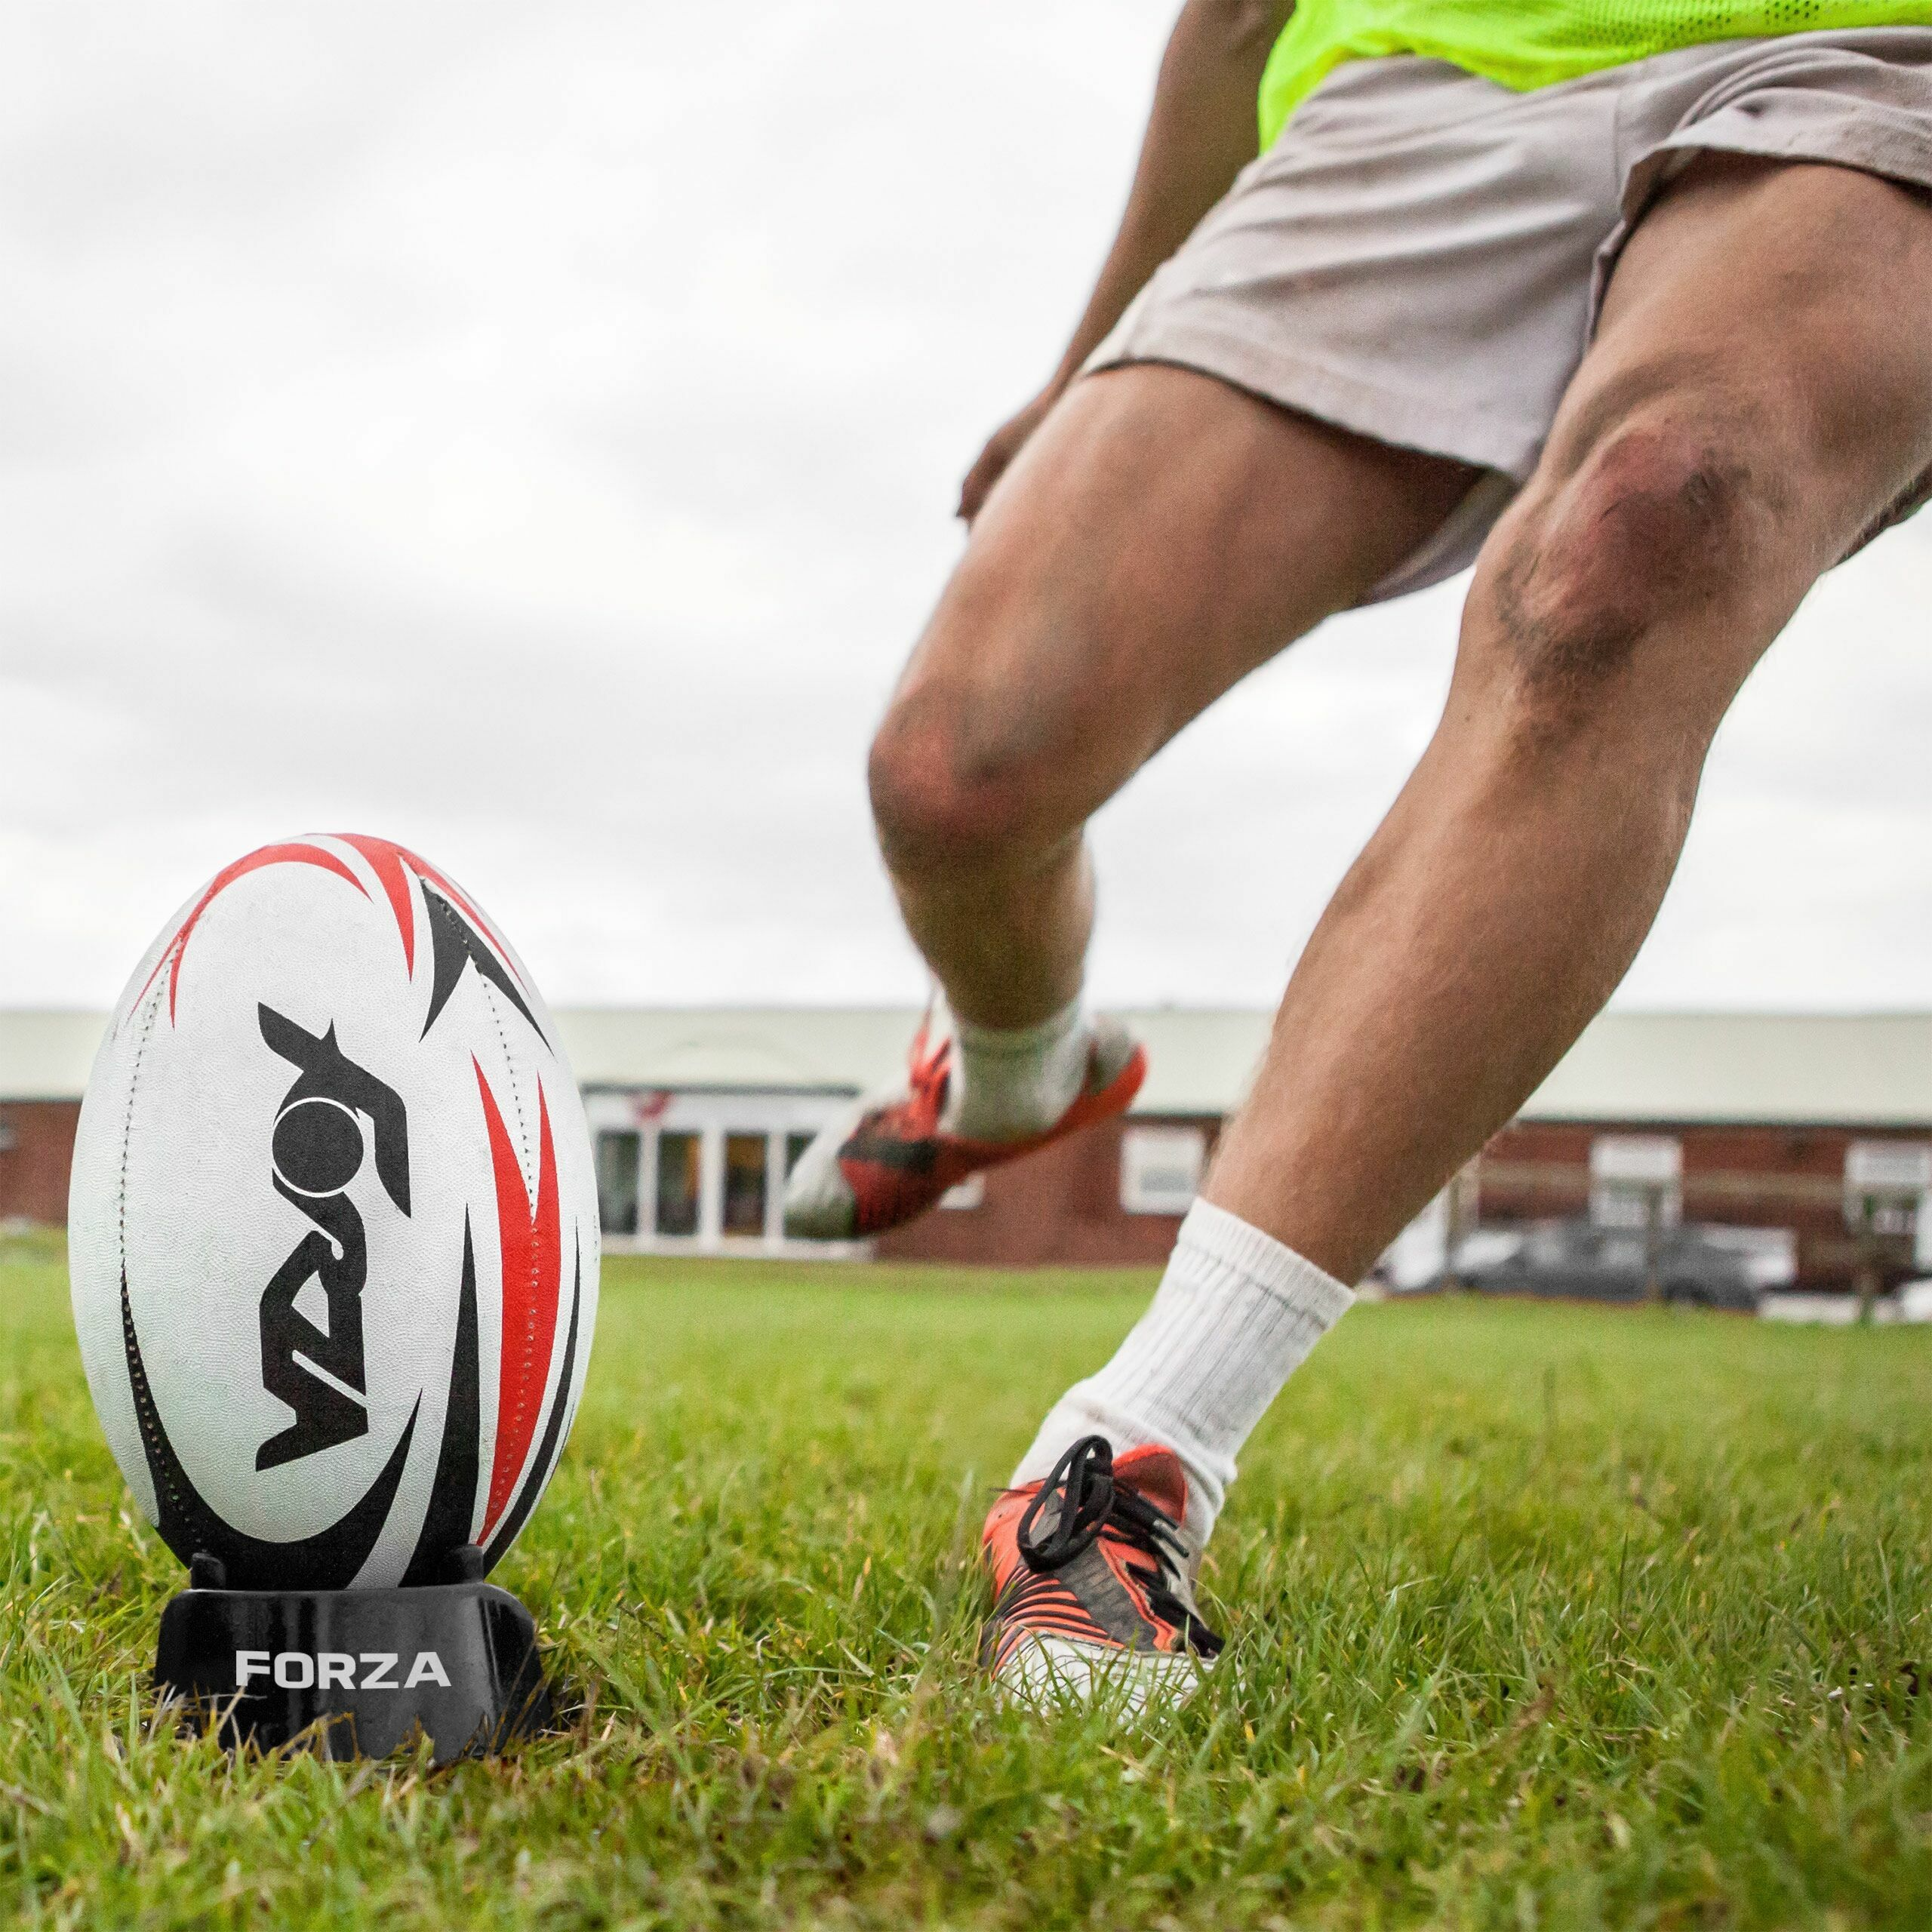 FORZA Rugby Kicking Tee